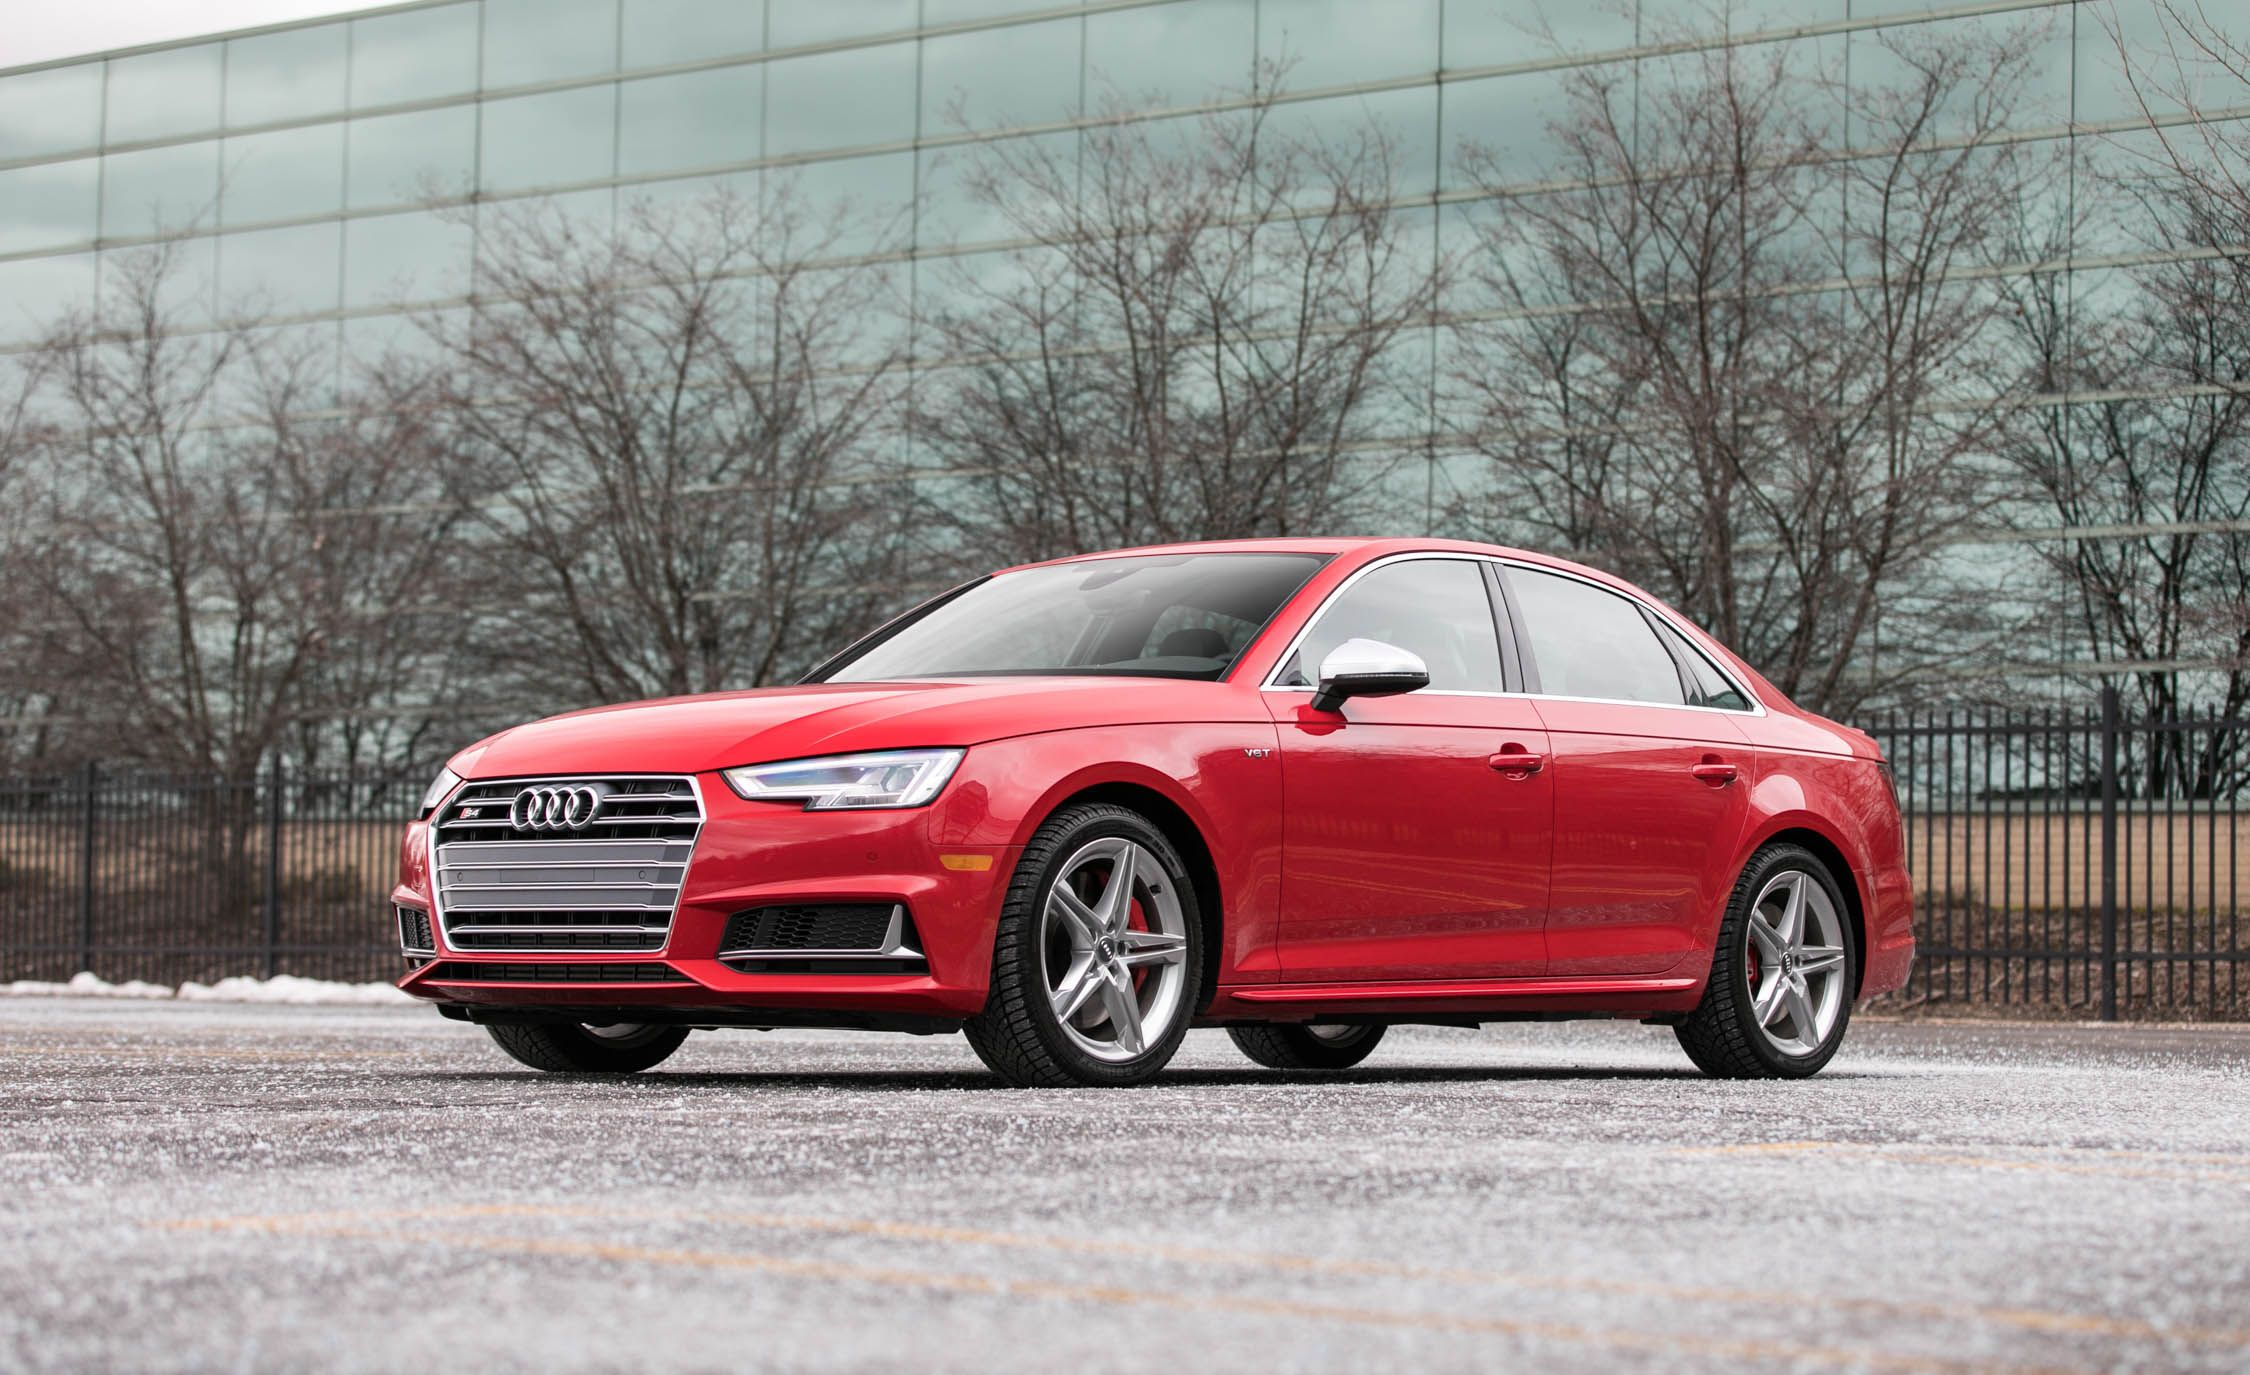 2019 Audi S4 Reviews Audi S4 Price Photos And Specs Car And Driver